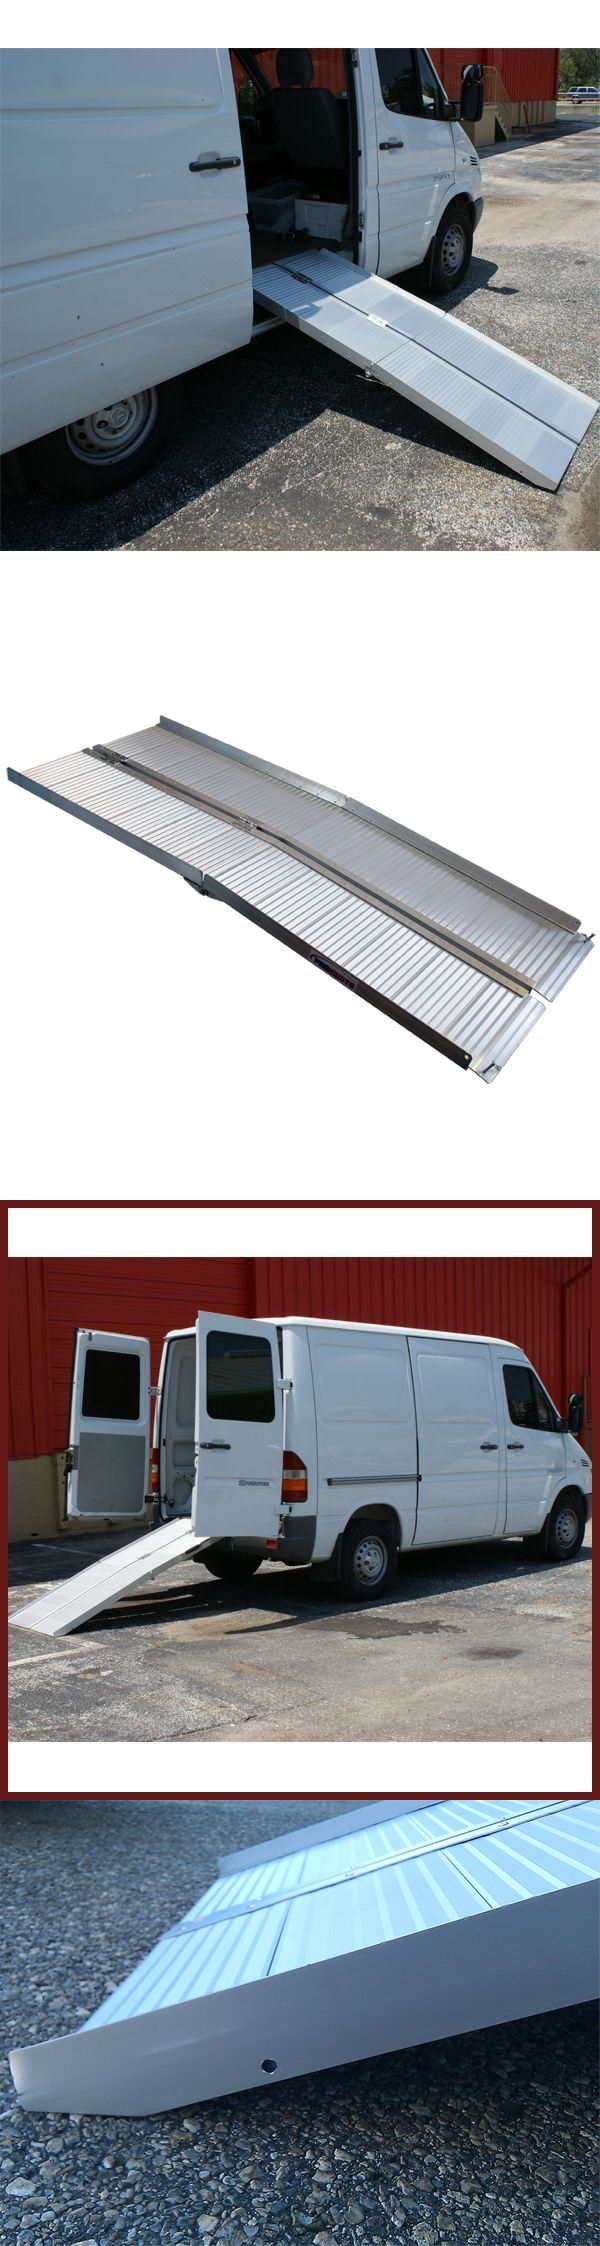 Access Ramps: 6 Ft Portable Aluminum Wheelchair Loading Ramp: Folding Foot 5 7 Scooter New BUY IT NOW ONLY: $129.99